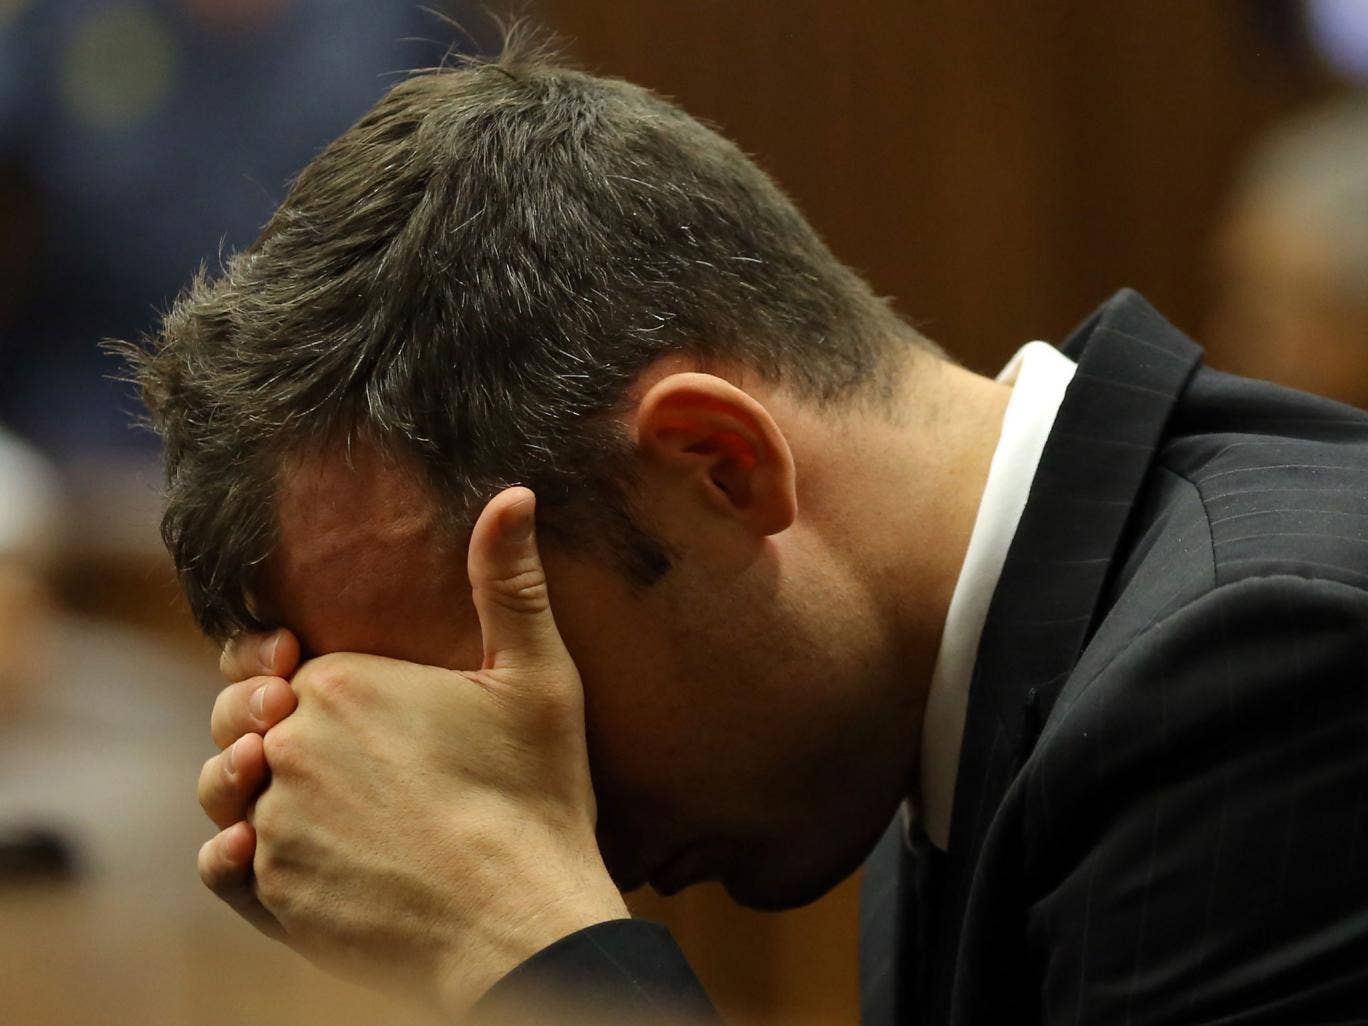 Oscar Pistorius places his head in his hands as he listens to the cross examination during his trial in court in Pretoria